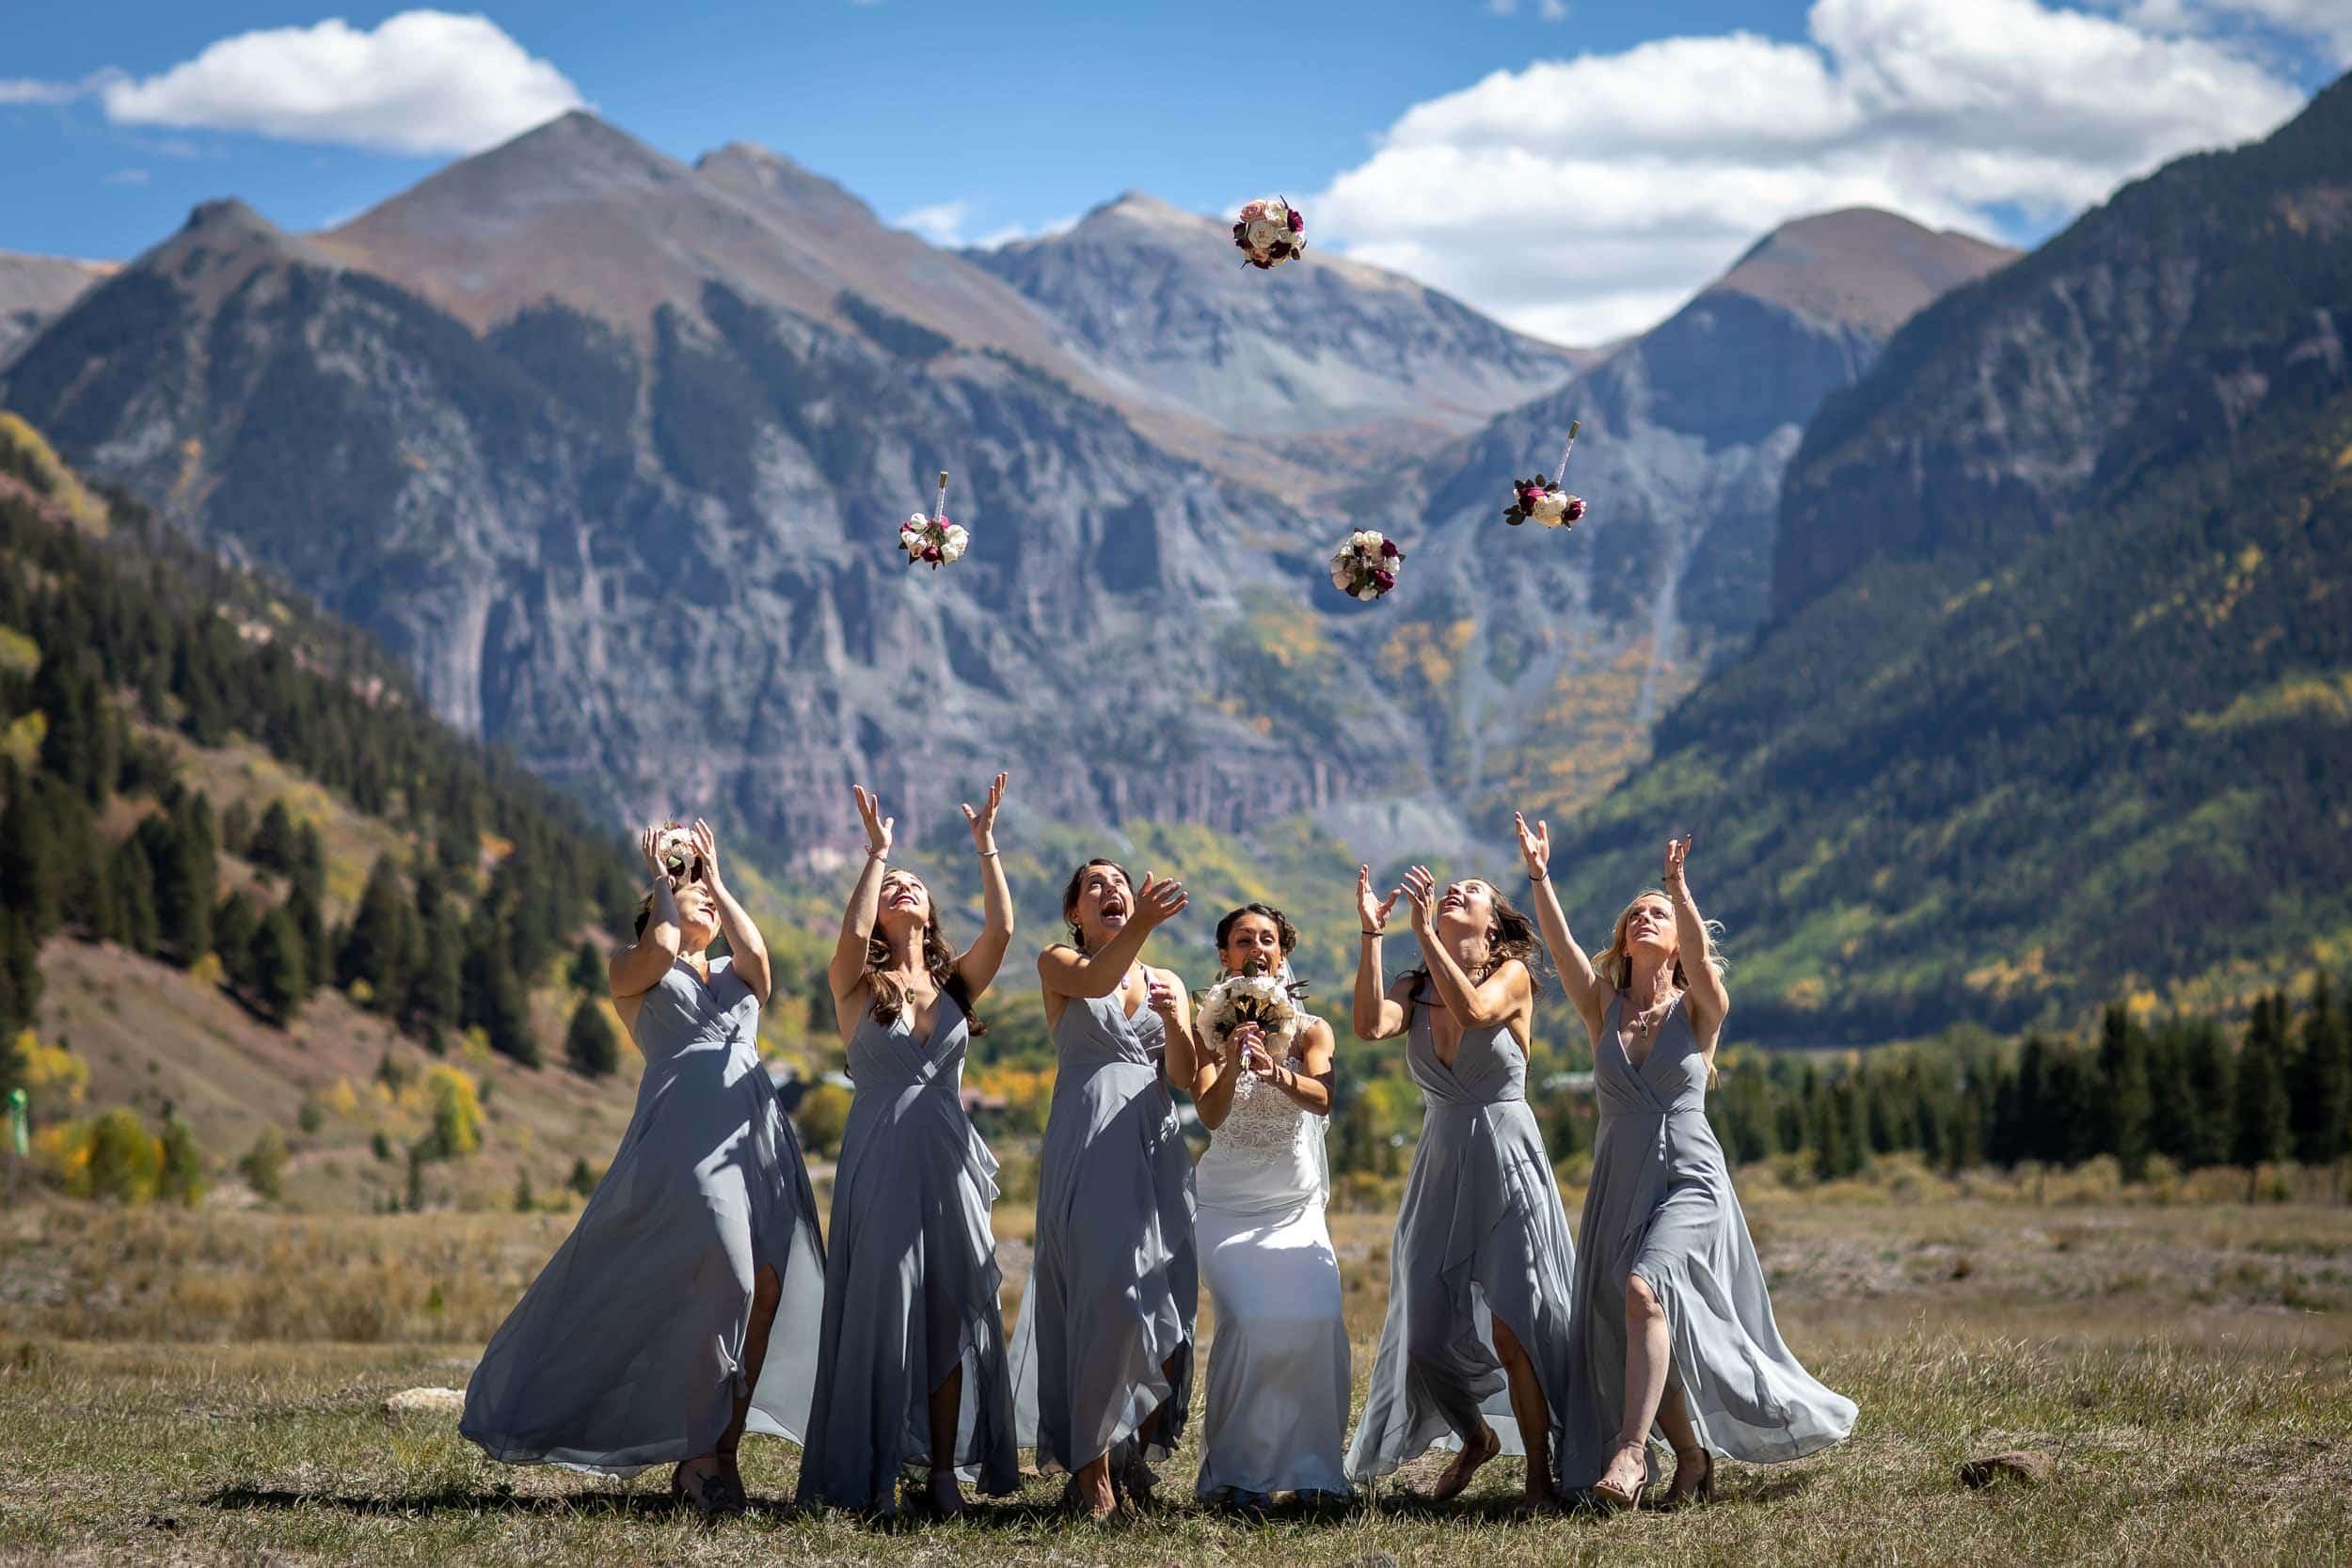 Brett and Maggies beautiful Colorado wedding at the Schmid Ranch outside of Telluride where Quentin Tarantino's Hateful Eight movie was filmed. Image by Ben Eng Photography.